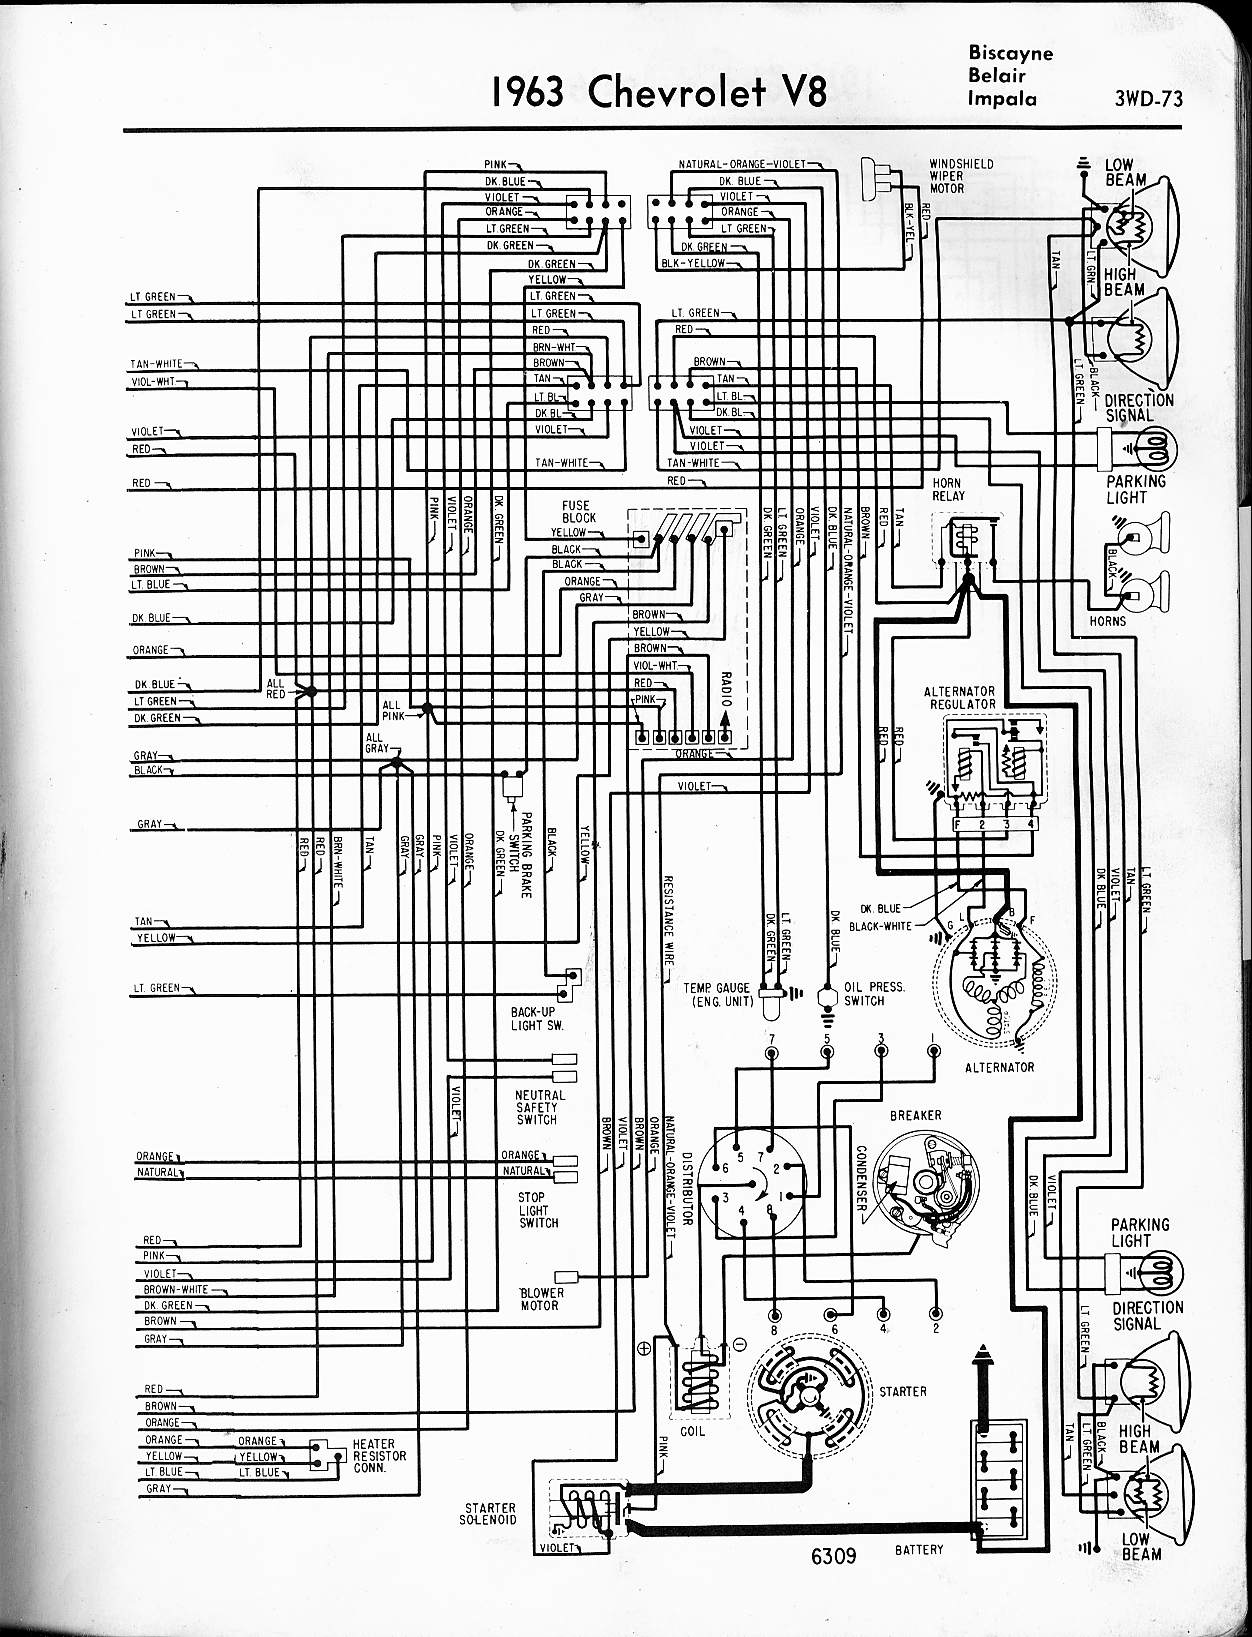 hight resolution of 57 65 chevy wiring diagrams mix 1963 v8 biscayne belair impala right